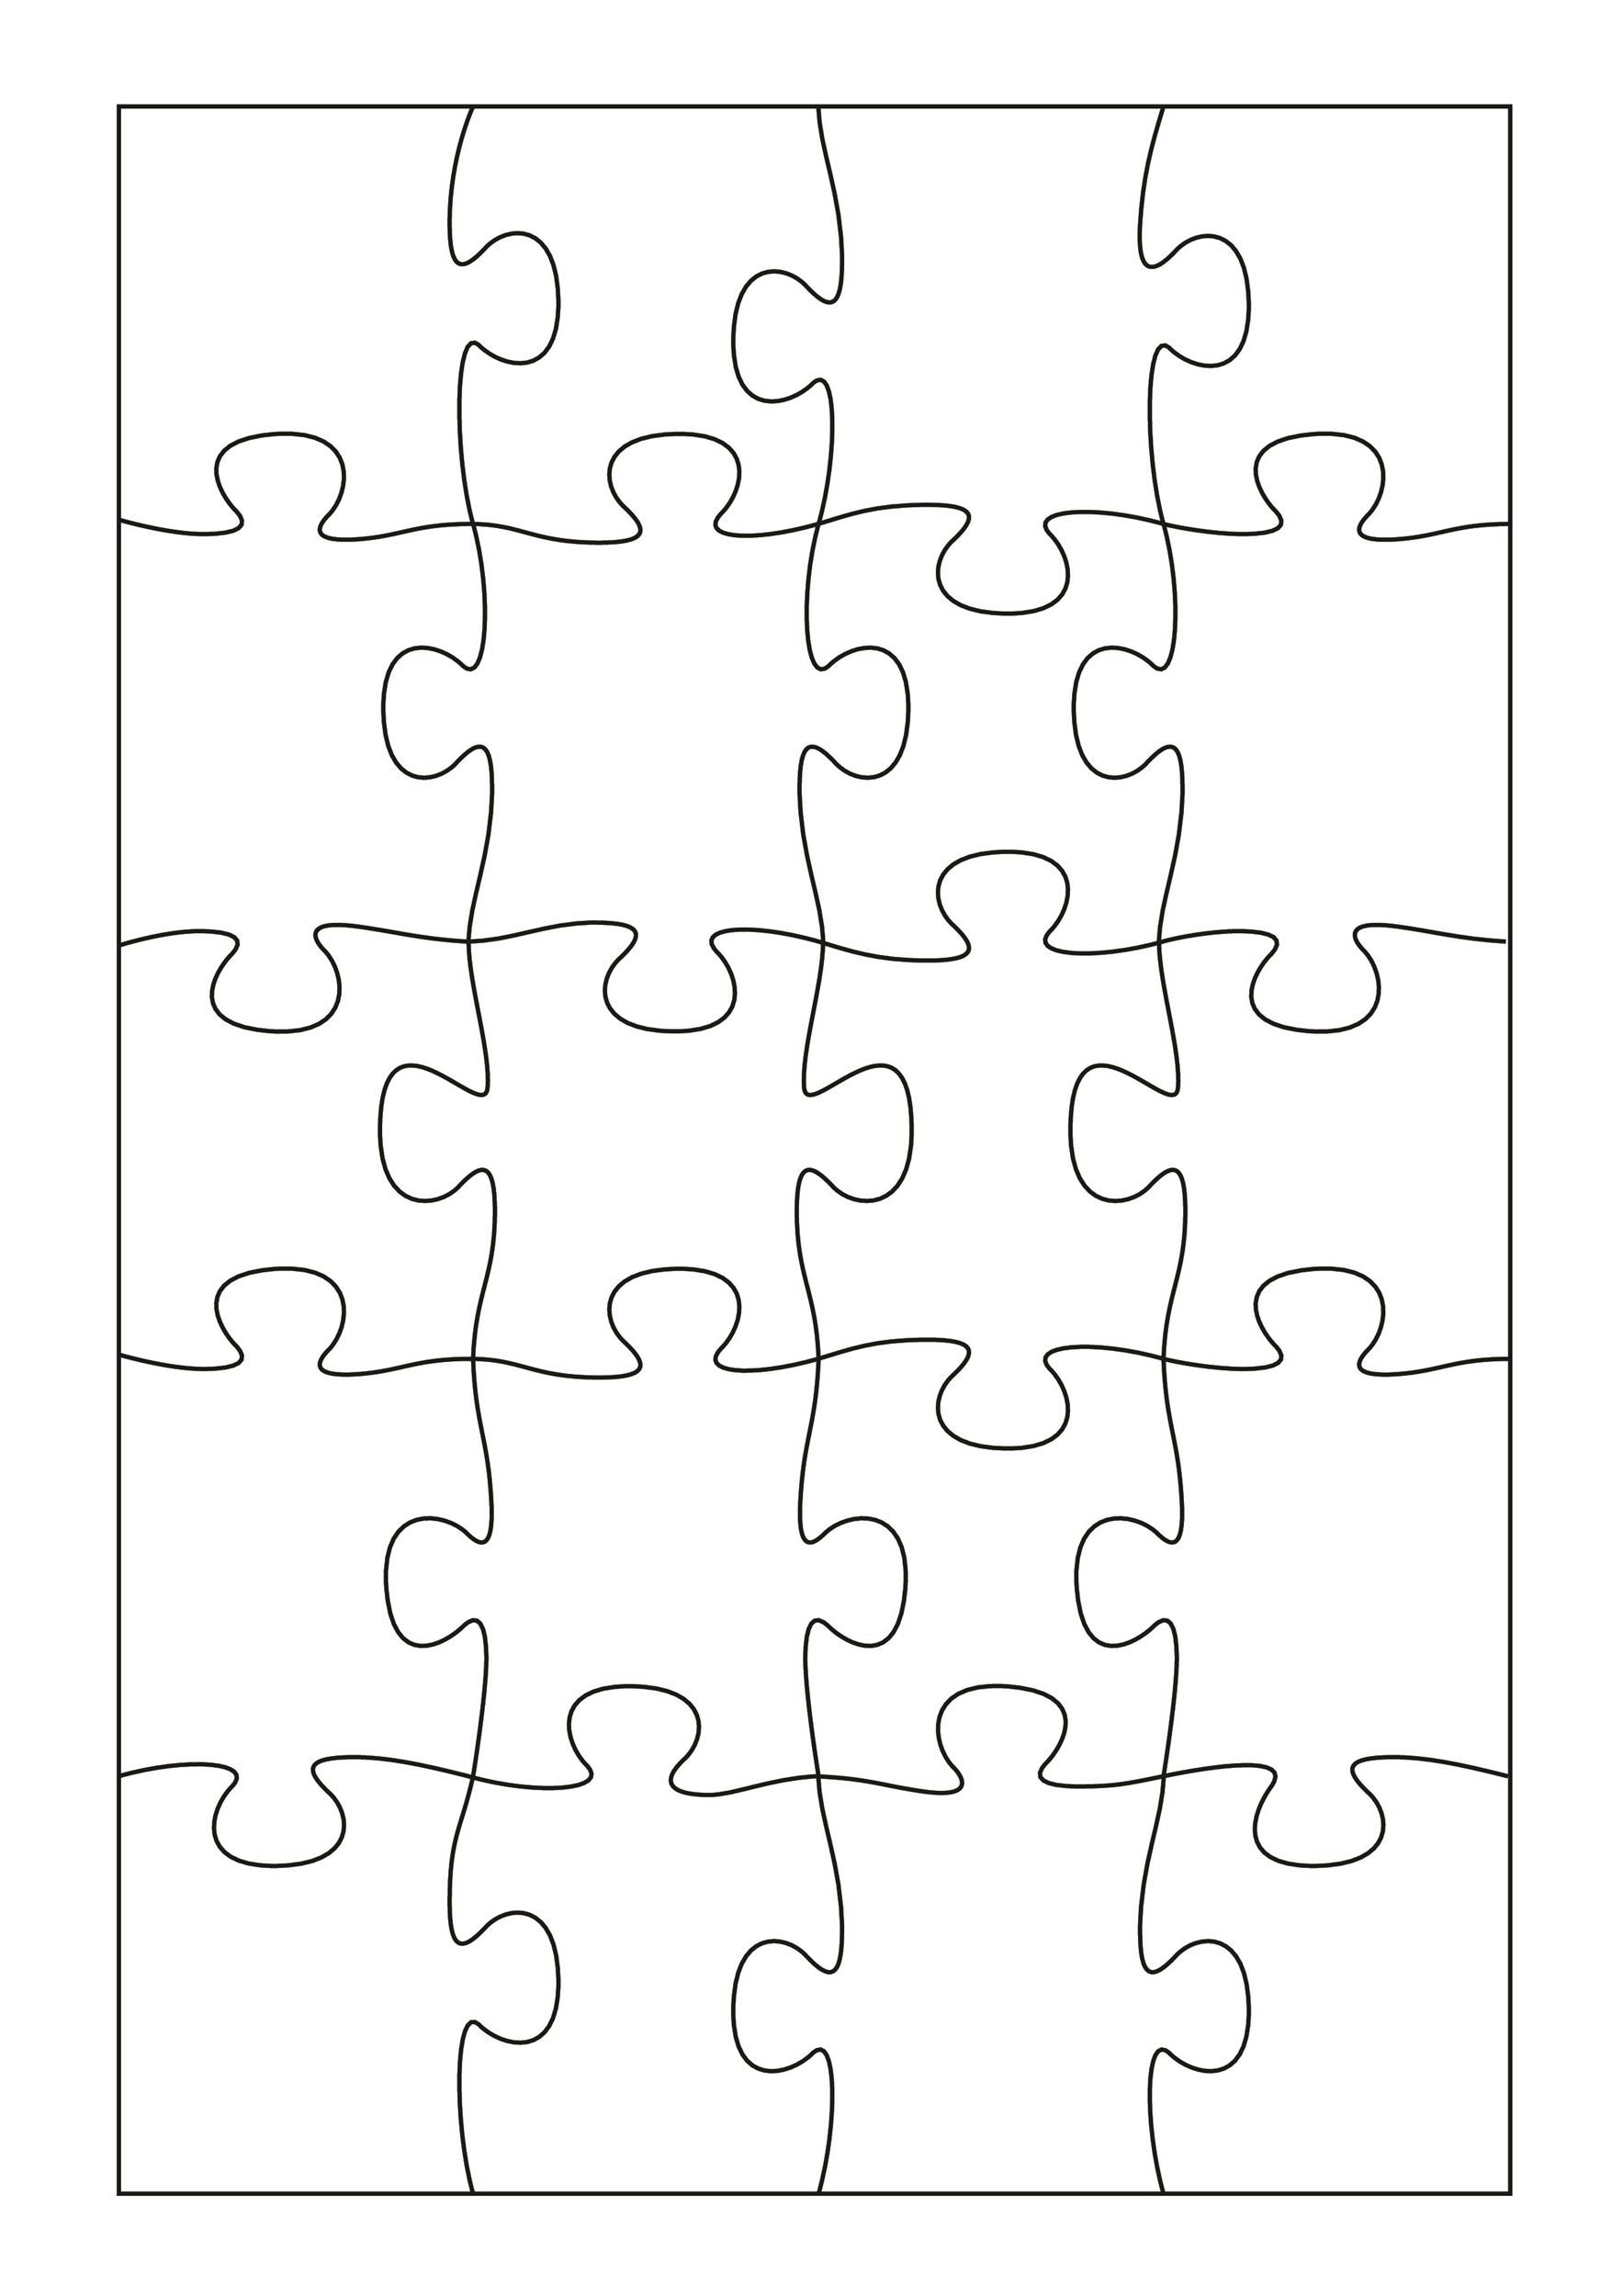 19 Printable Puzzle Piece Templates